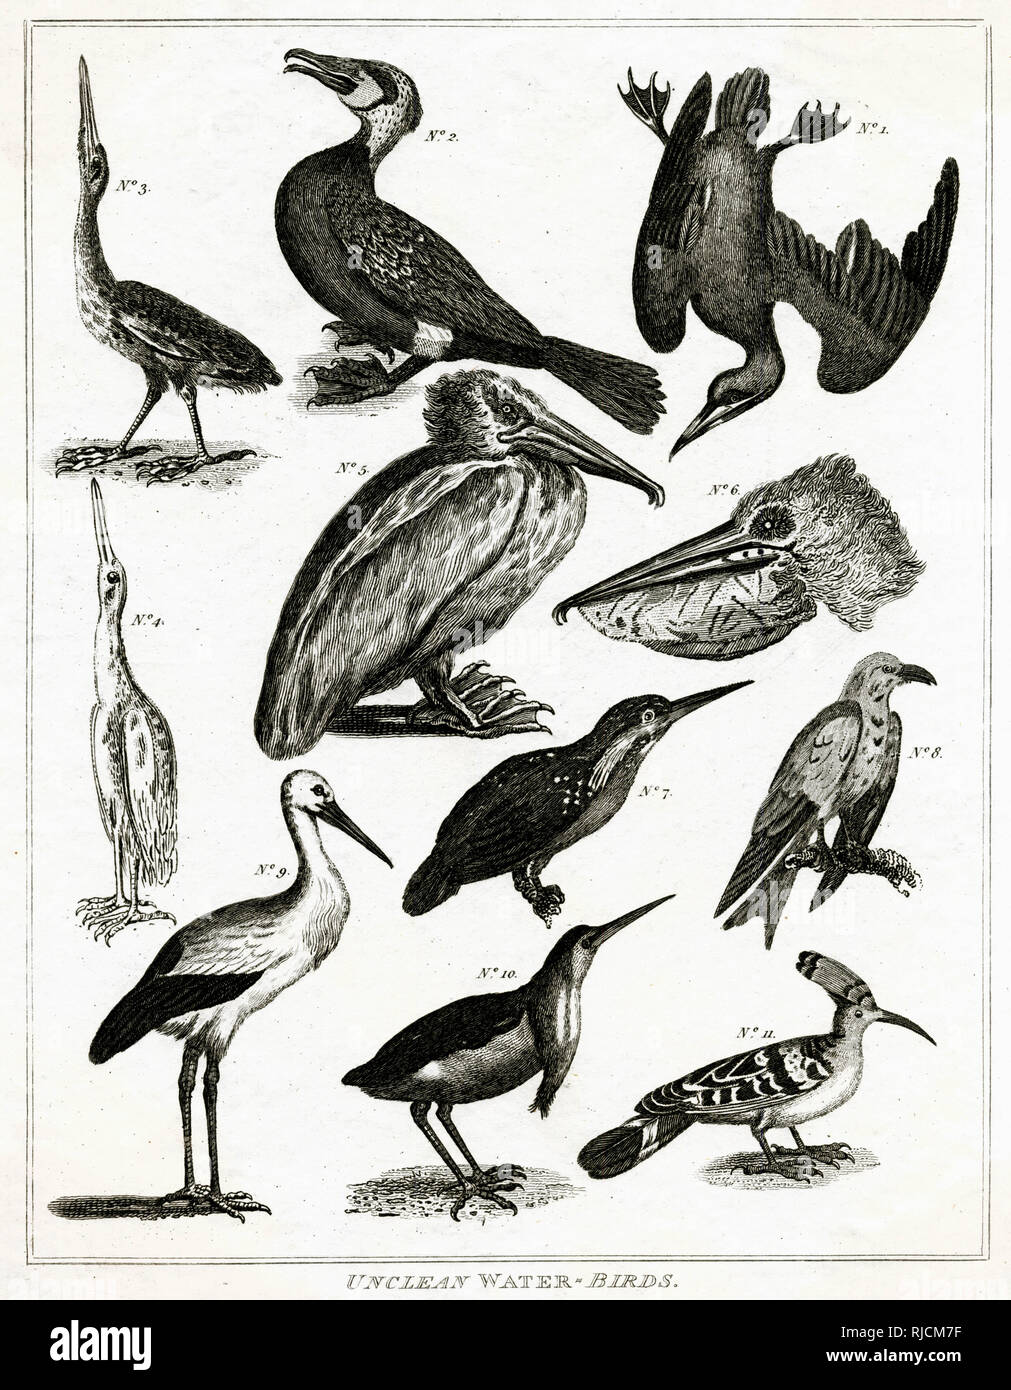 Engraving of  'unclean' or non - kosher water birds. In Judaism, the concept of 'impure' or 'unclean' animals, plays a prominent role in Jewish law that specifies which foods are allowed (kosher) and which are forbidden to eat. - Stock Image